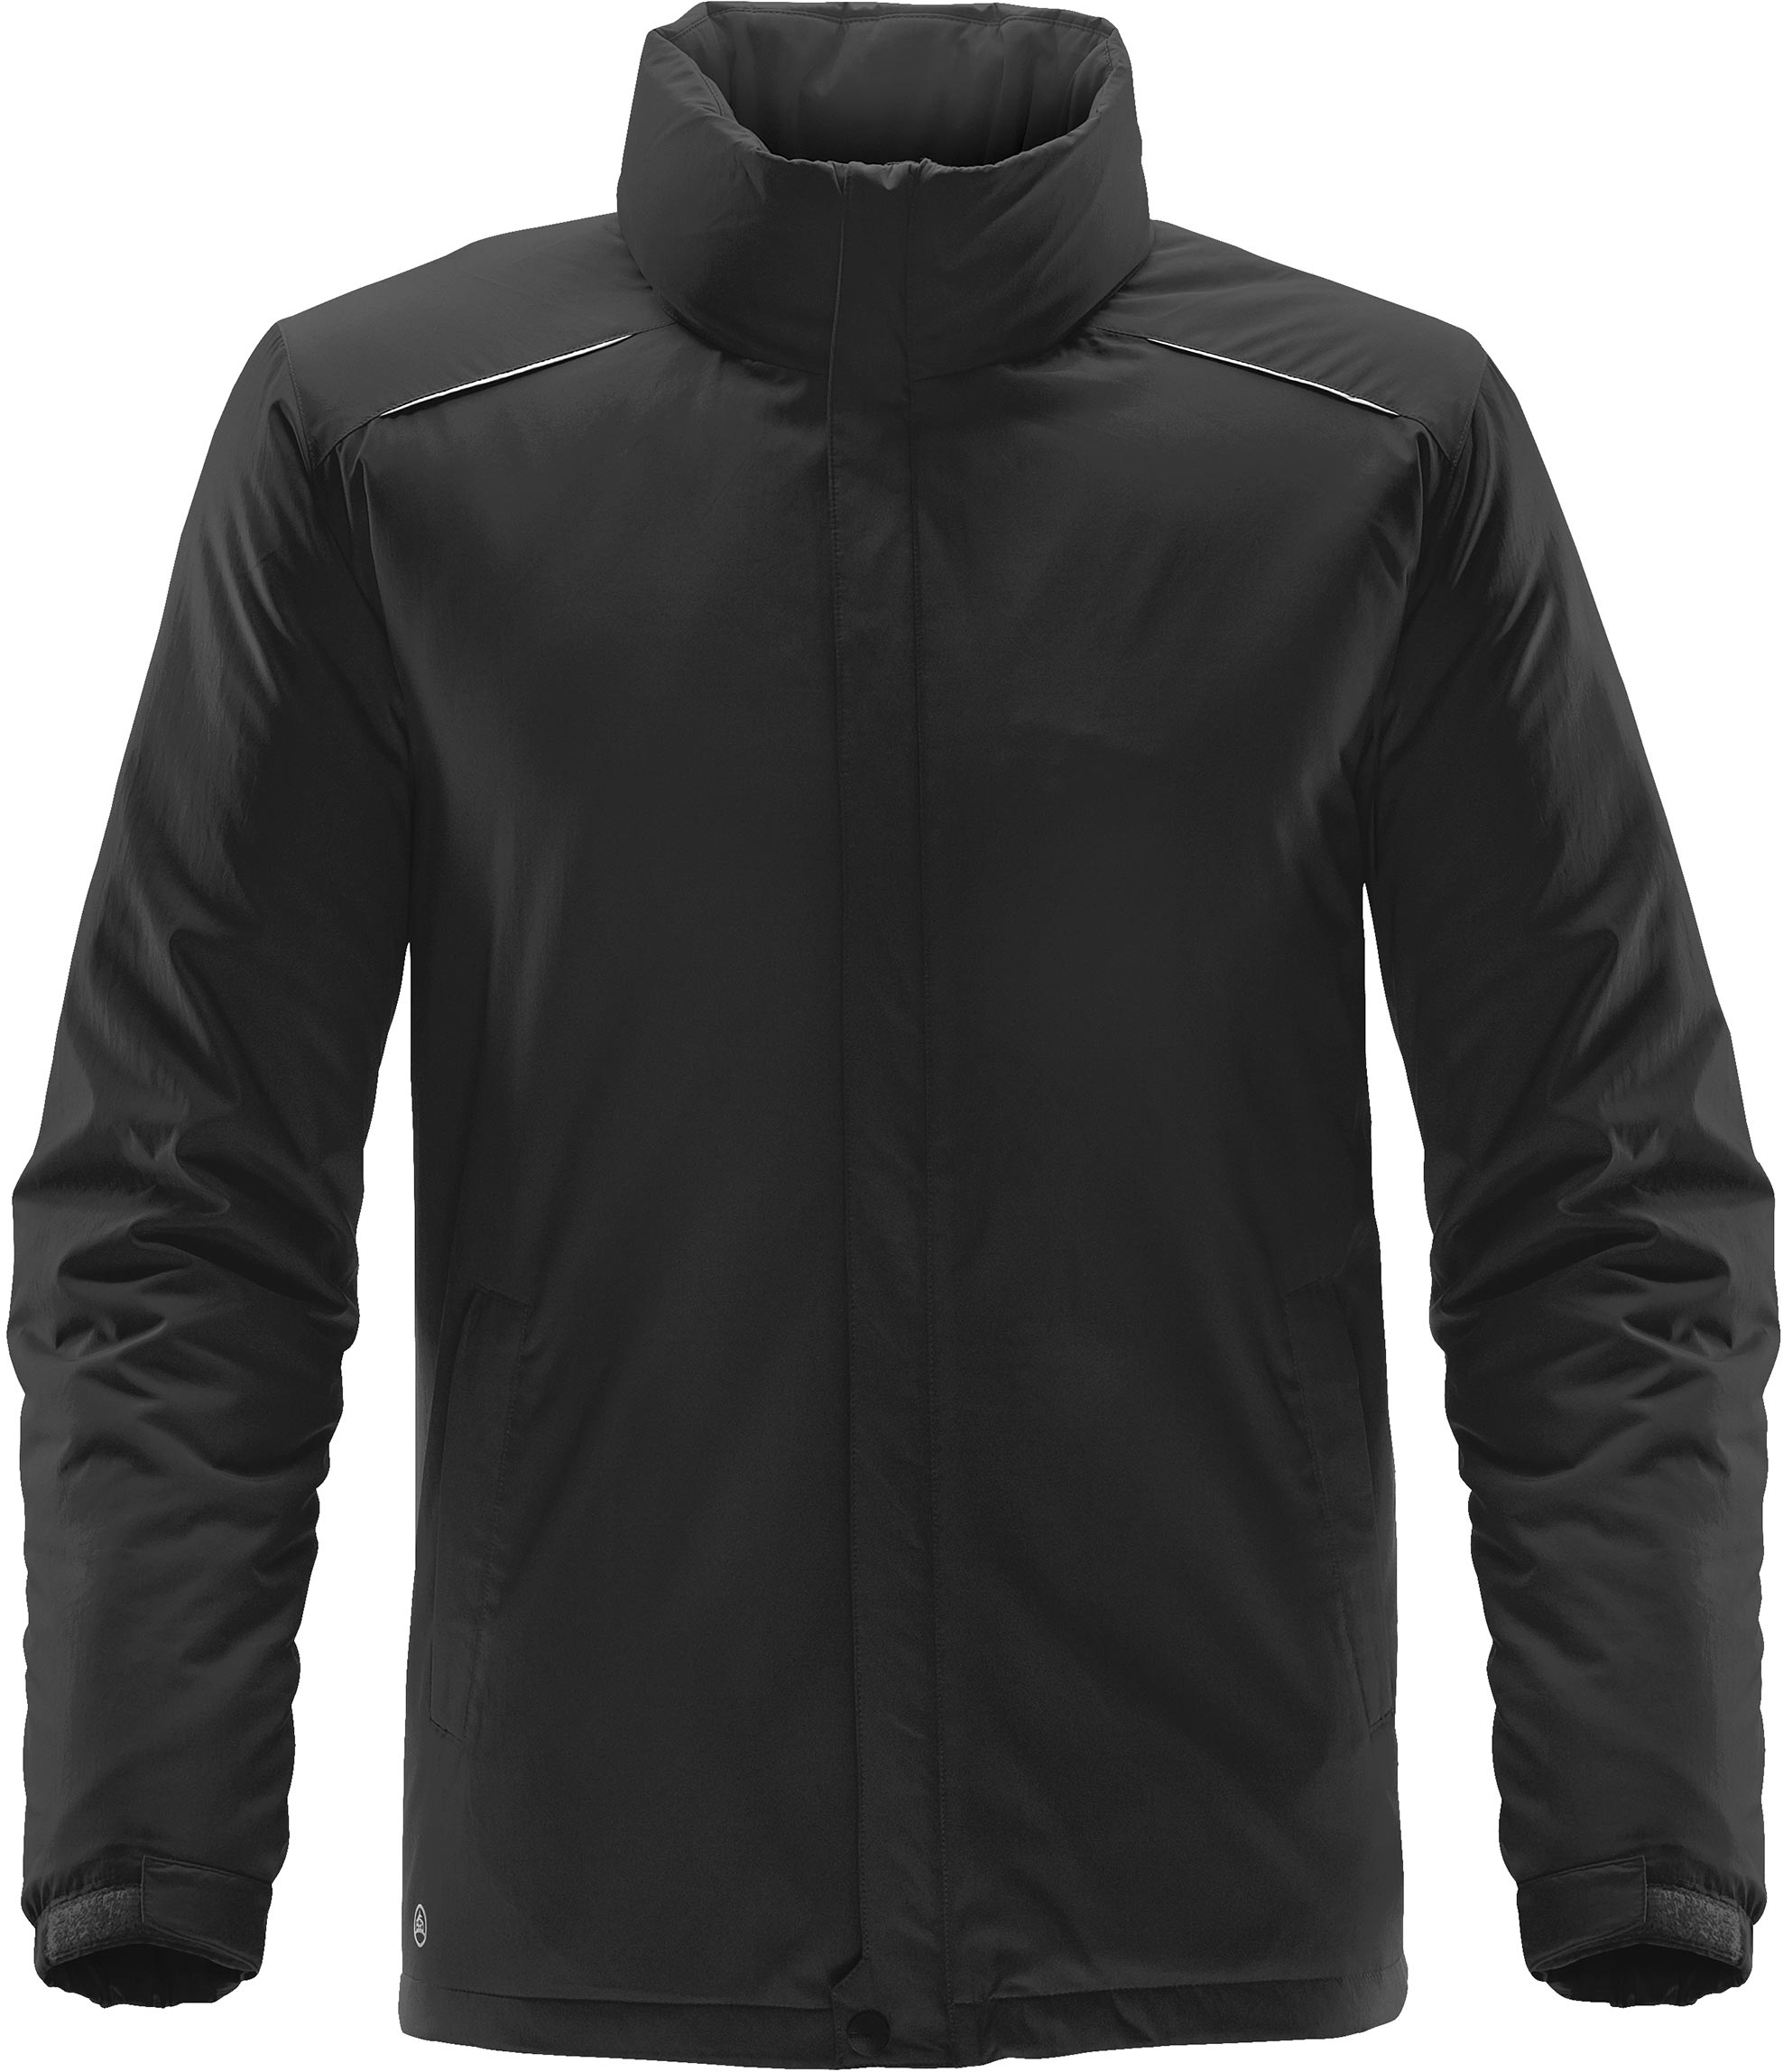 Stormtech KXR-1 - Men's Nautilus Insulated Jacket